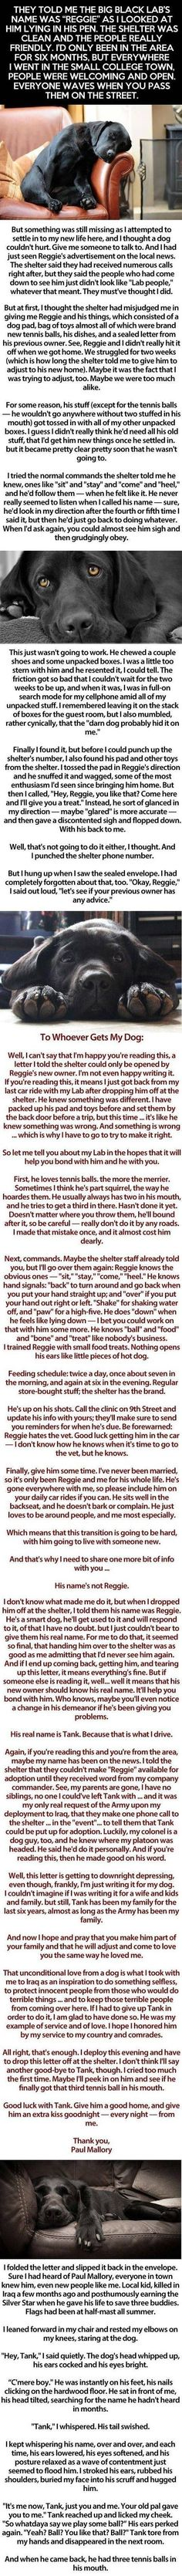 Be warned this WILL make you cry. Amazing people like this deserve amazing dogs like this. What a beautiful but sad story.